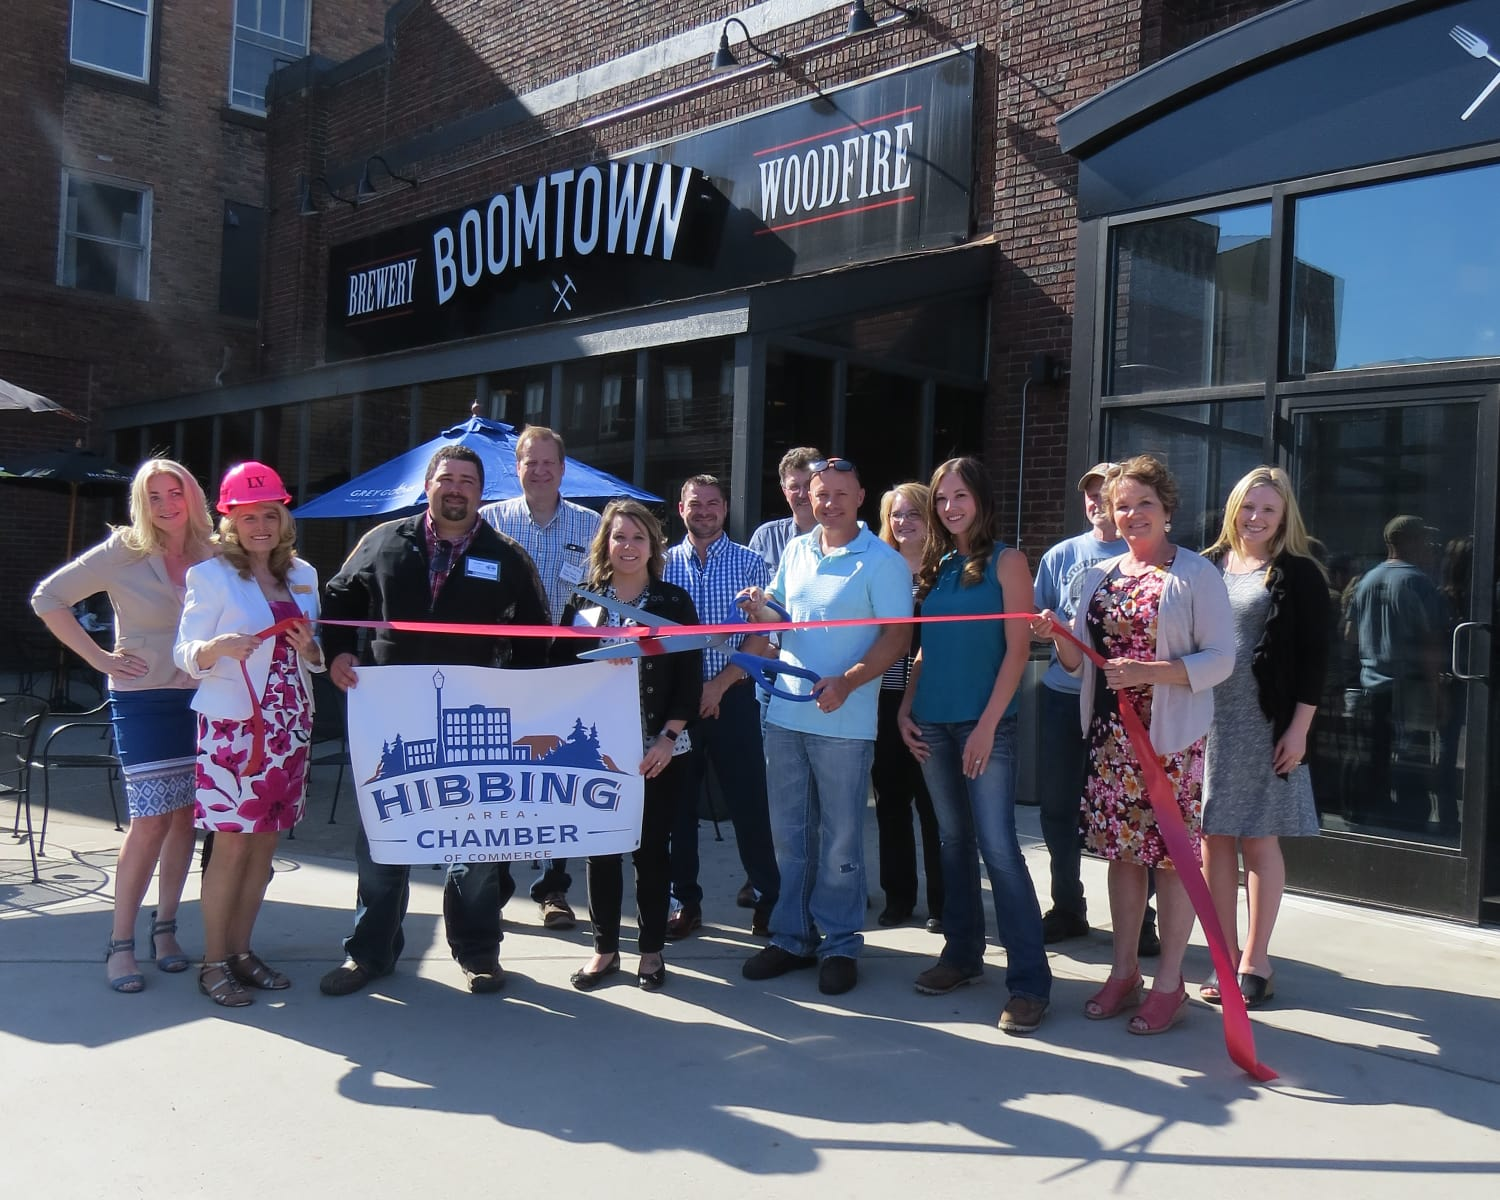 Boomtown Brewery & Woodfire Grill - New Business